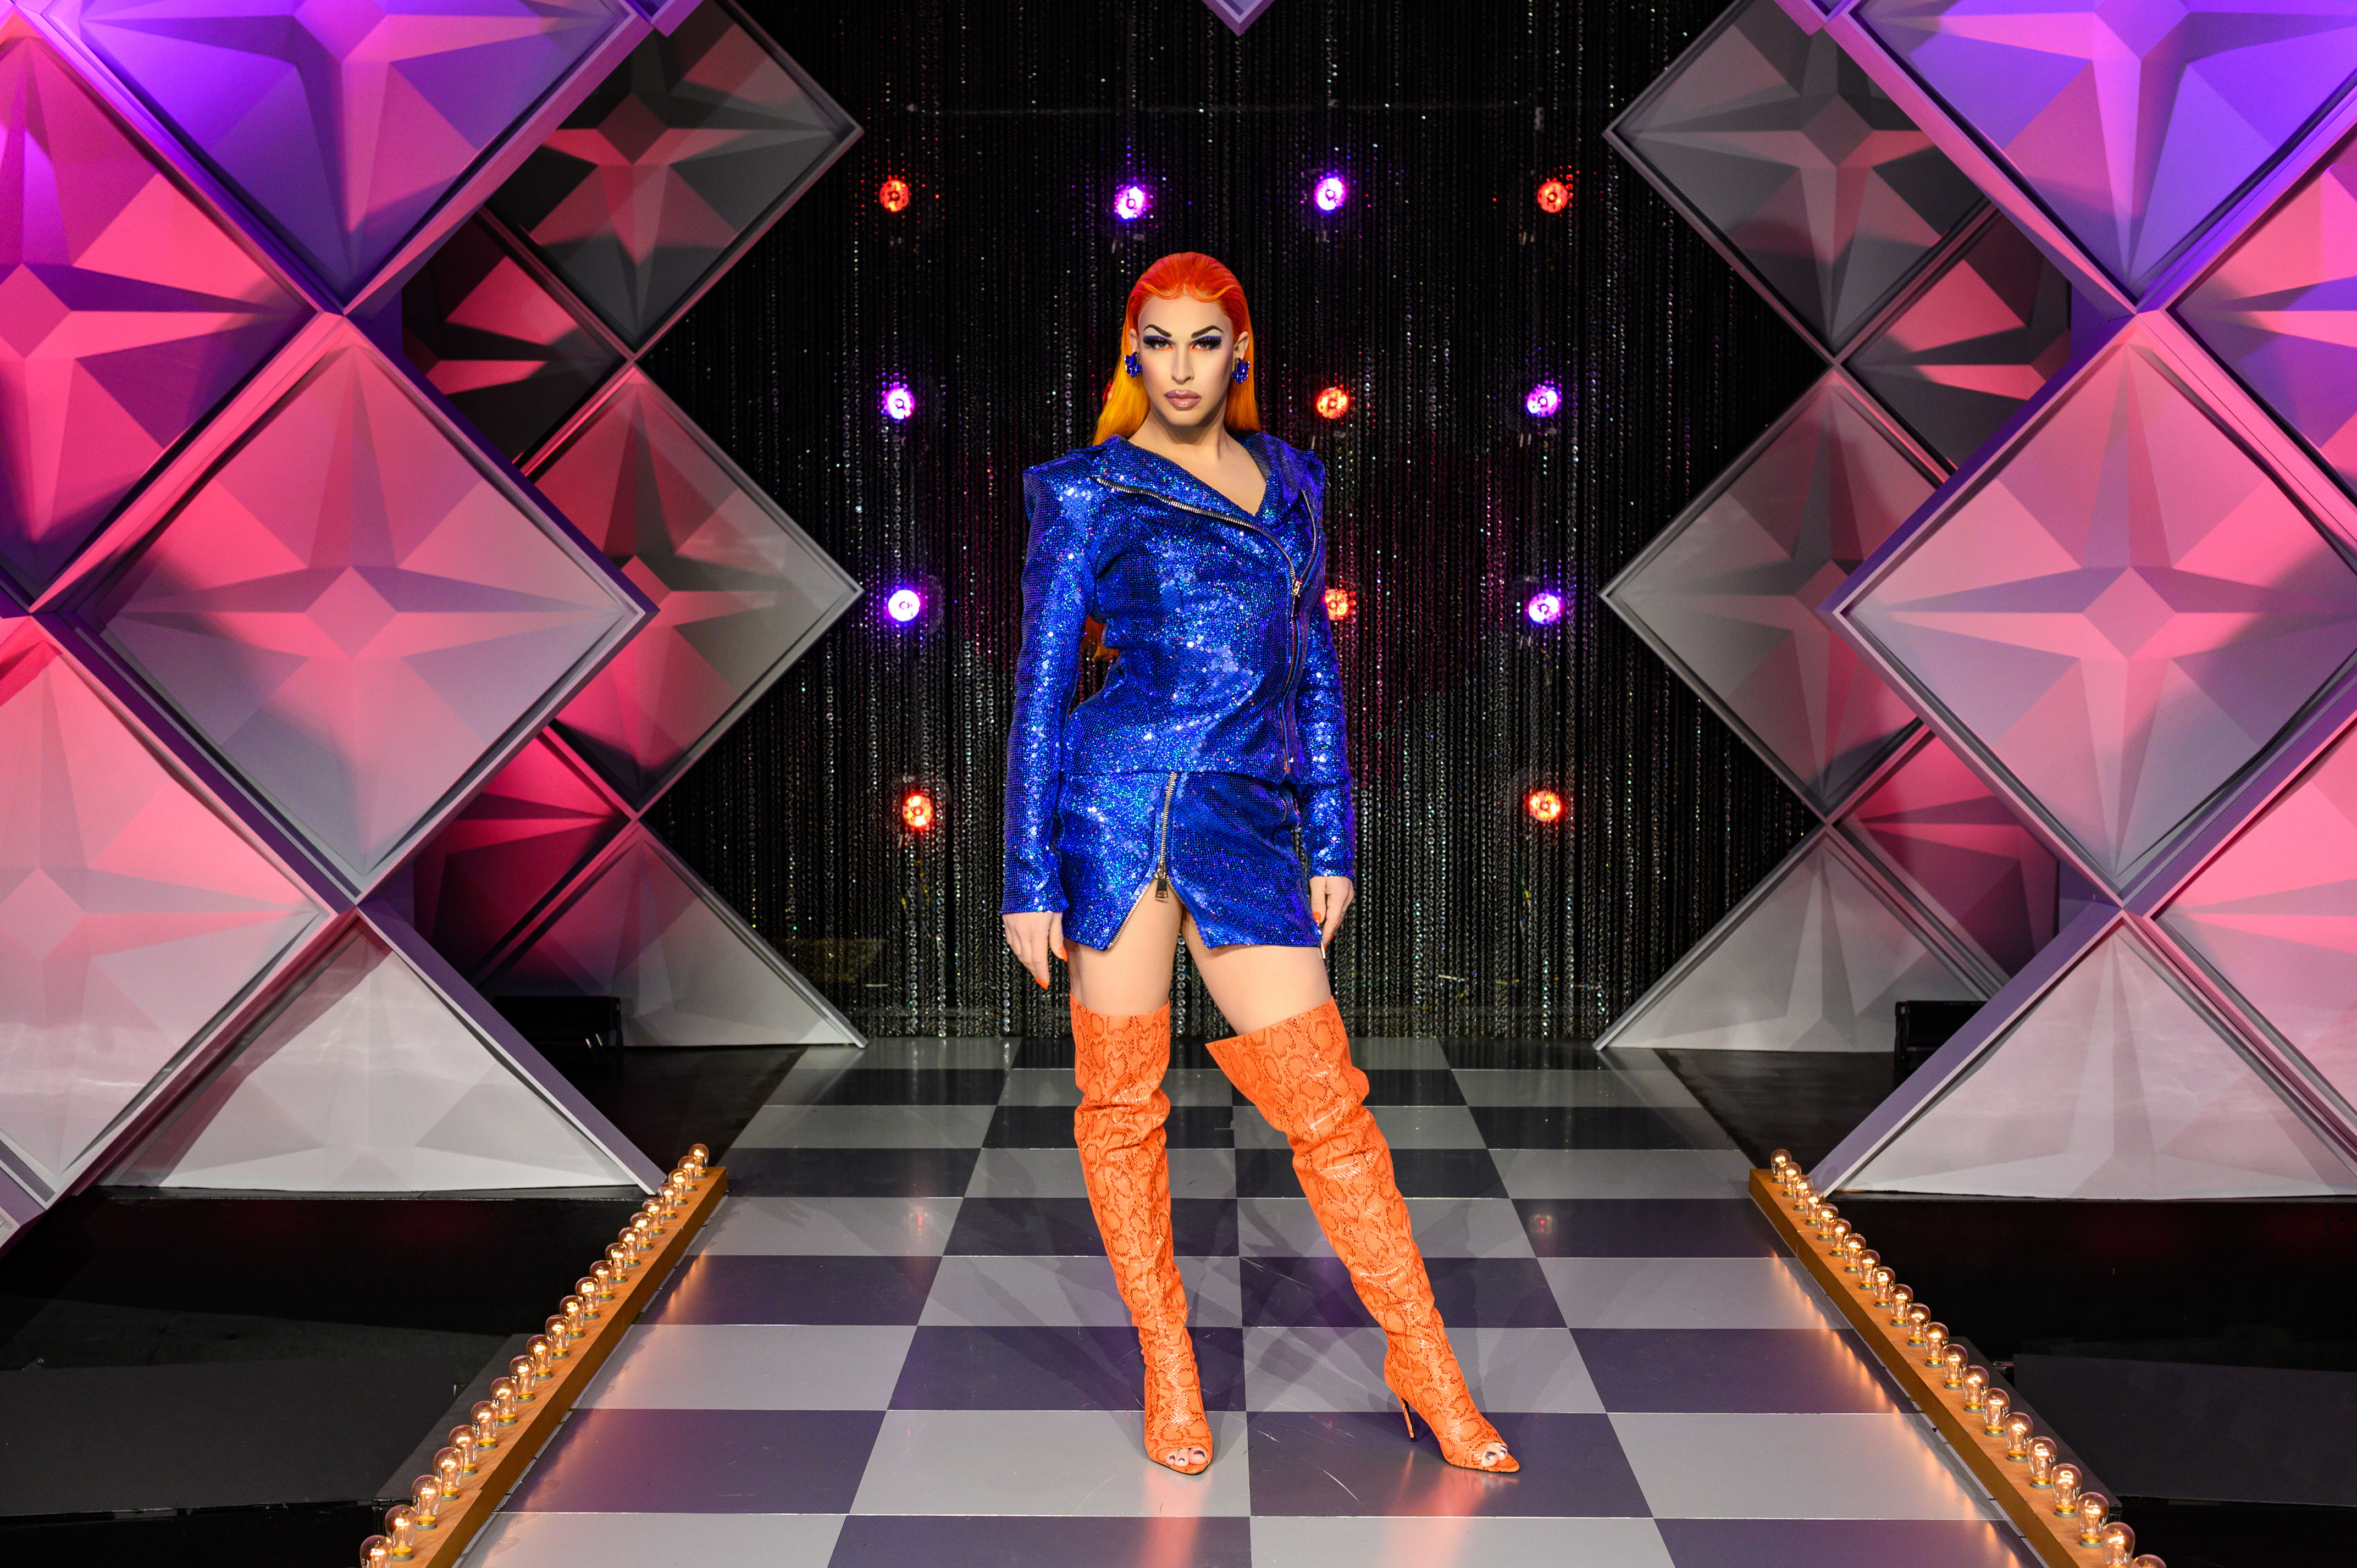 21 questions with 'Drag Race' star Brooke Lynn Hytes ...